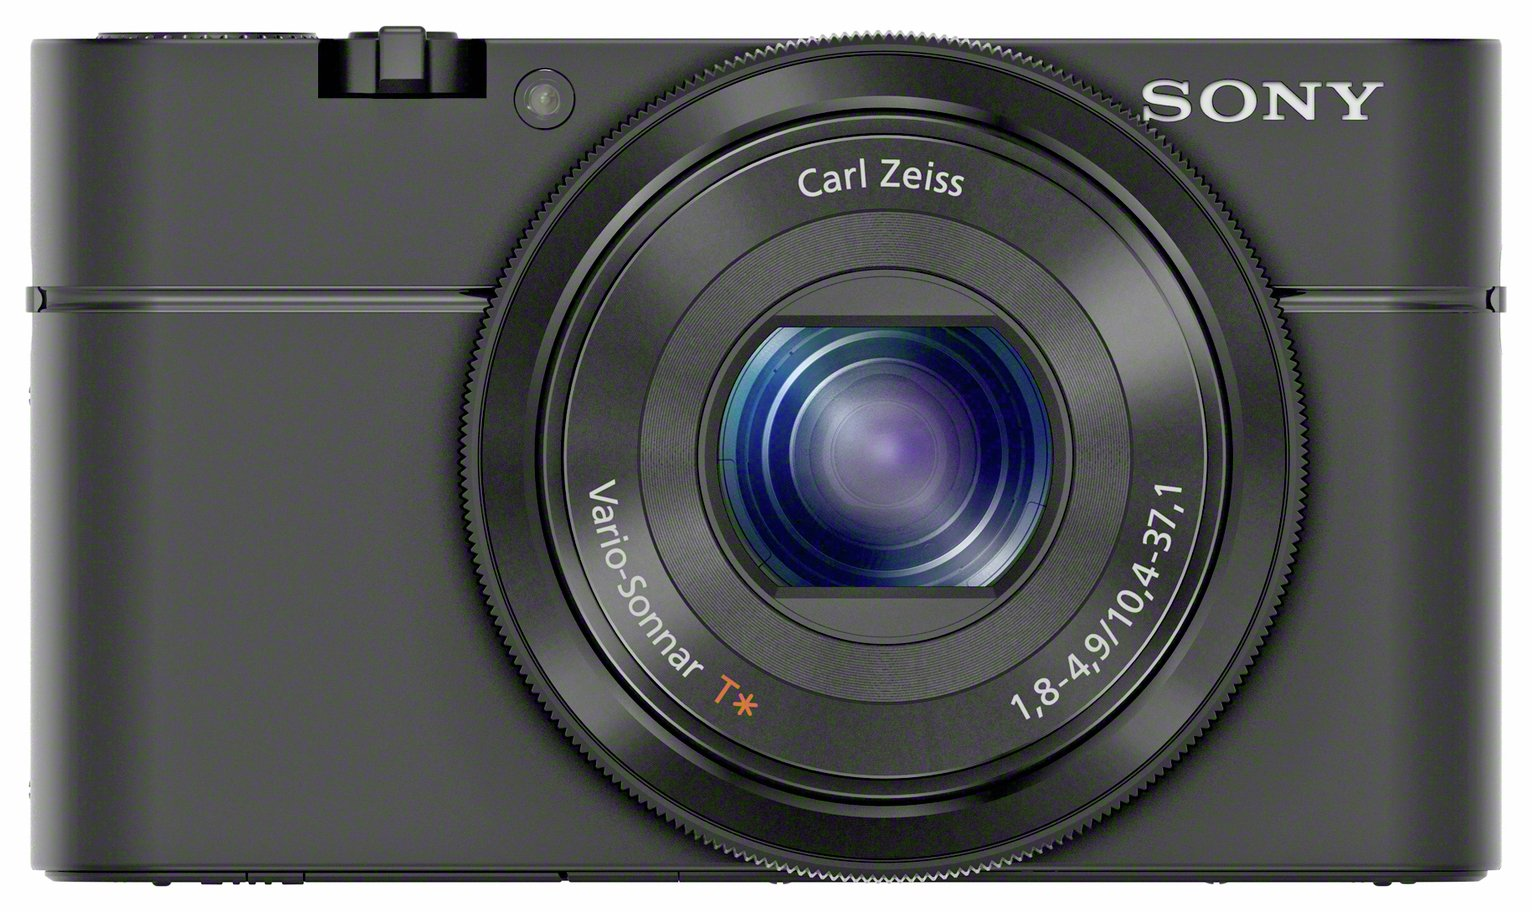 Sony Cybershot RX100 3.6x Zoom Compact Digital Camera Black